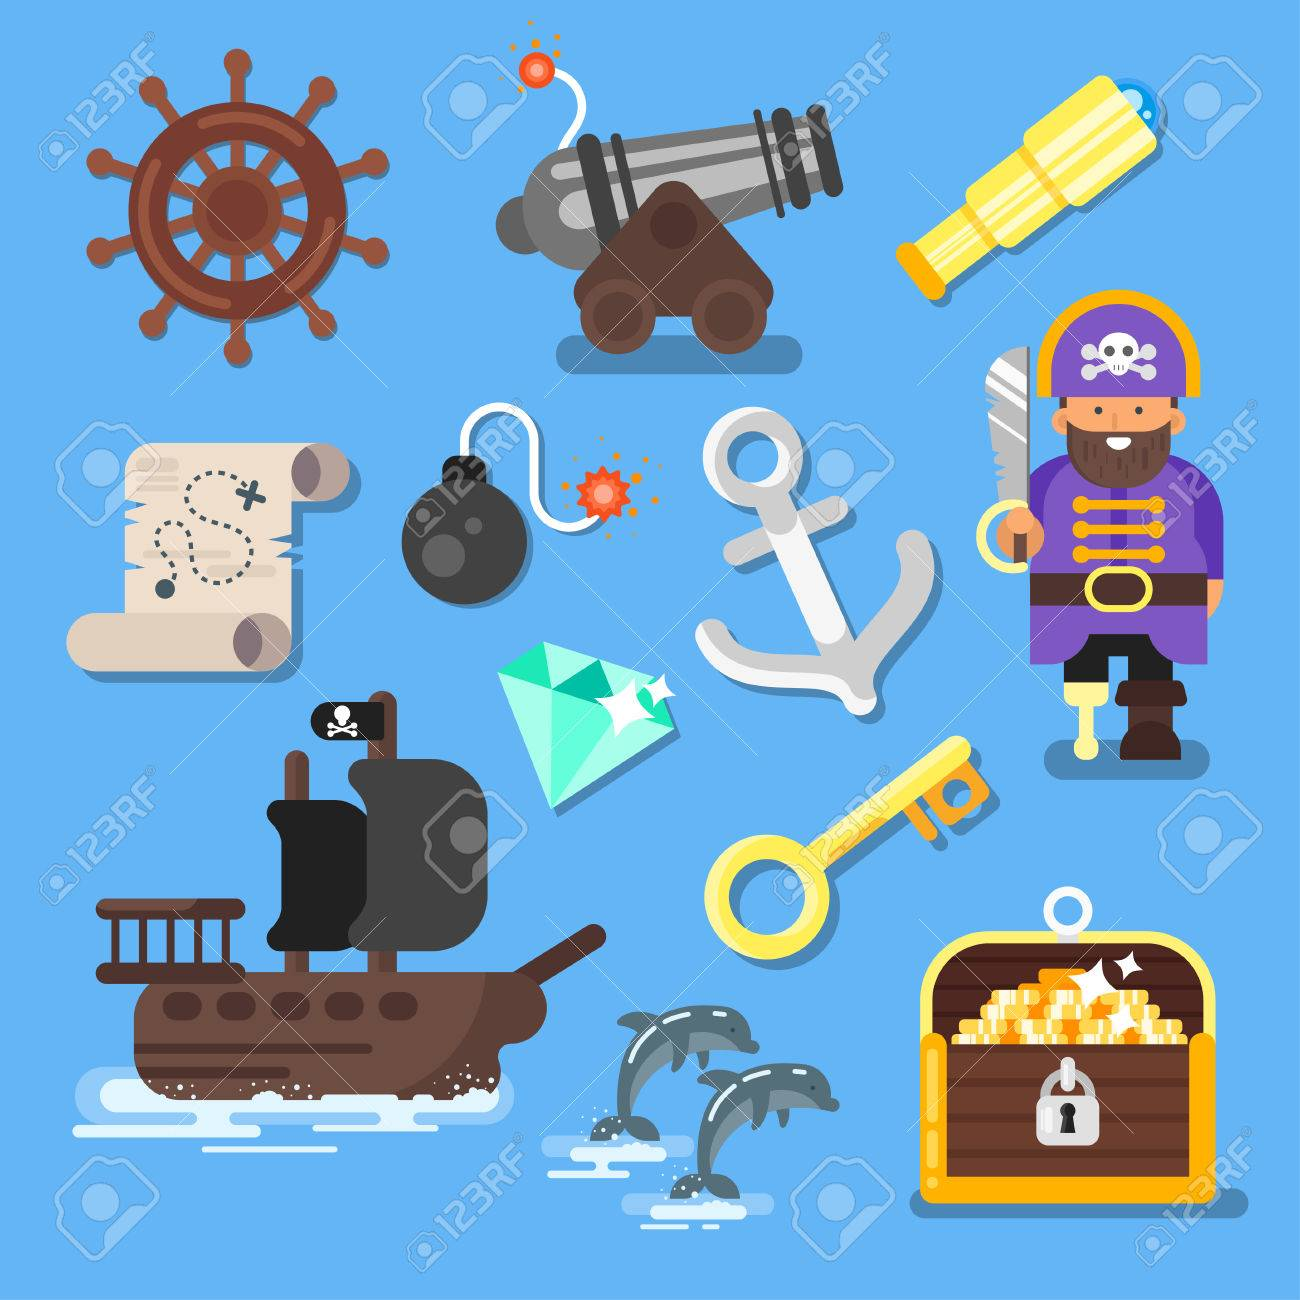 Vector flat style set of board game icon: pirate ship, treasure chest, map. Isolated on blue background. - 67056141